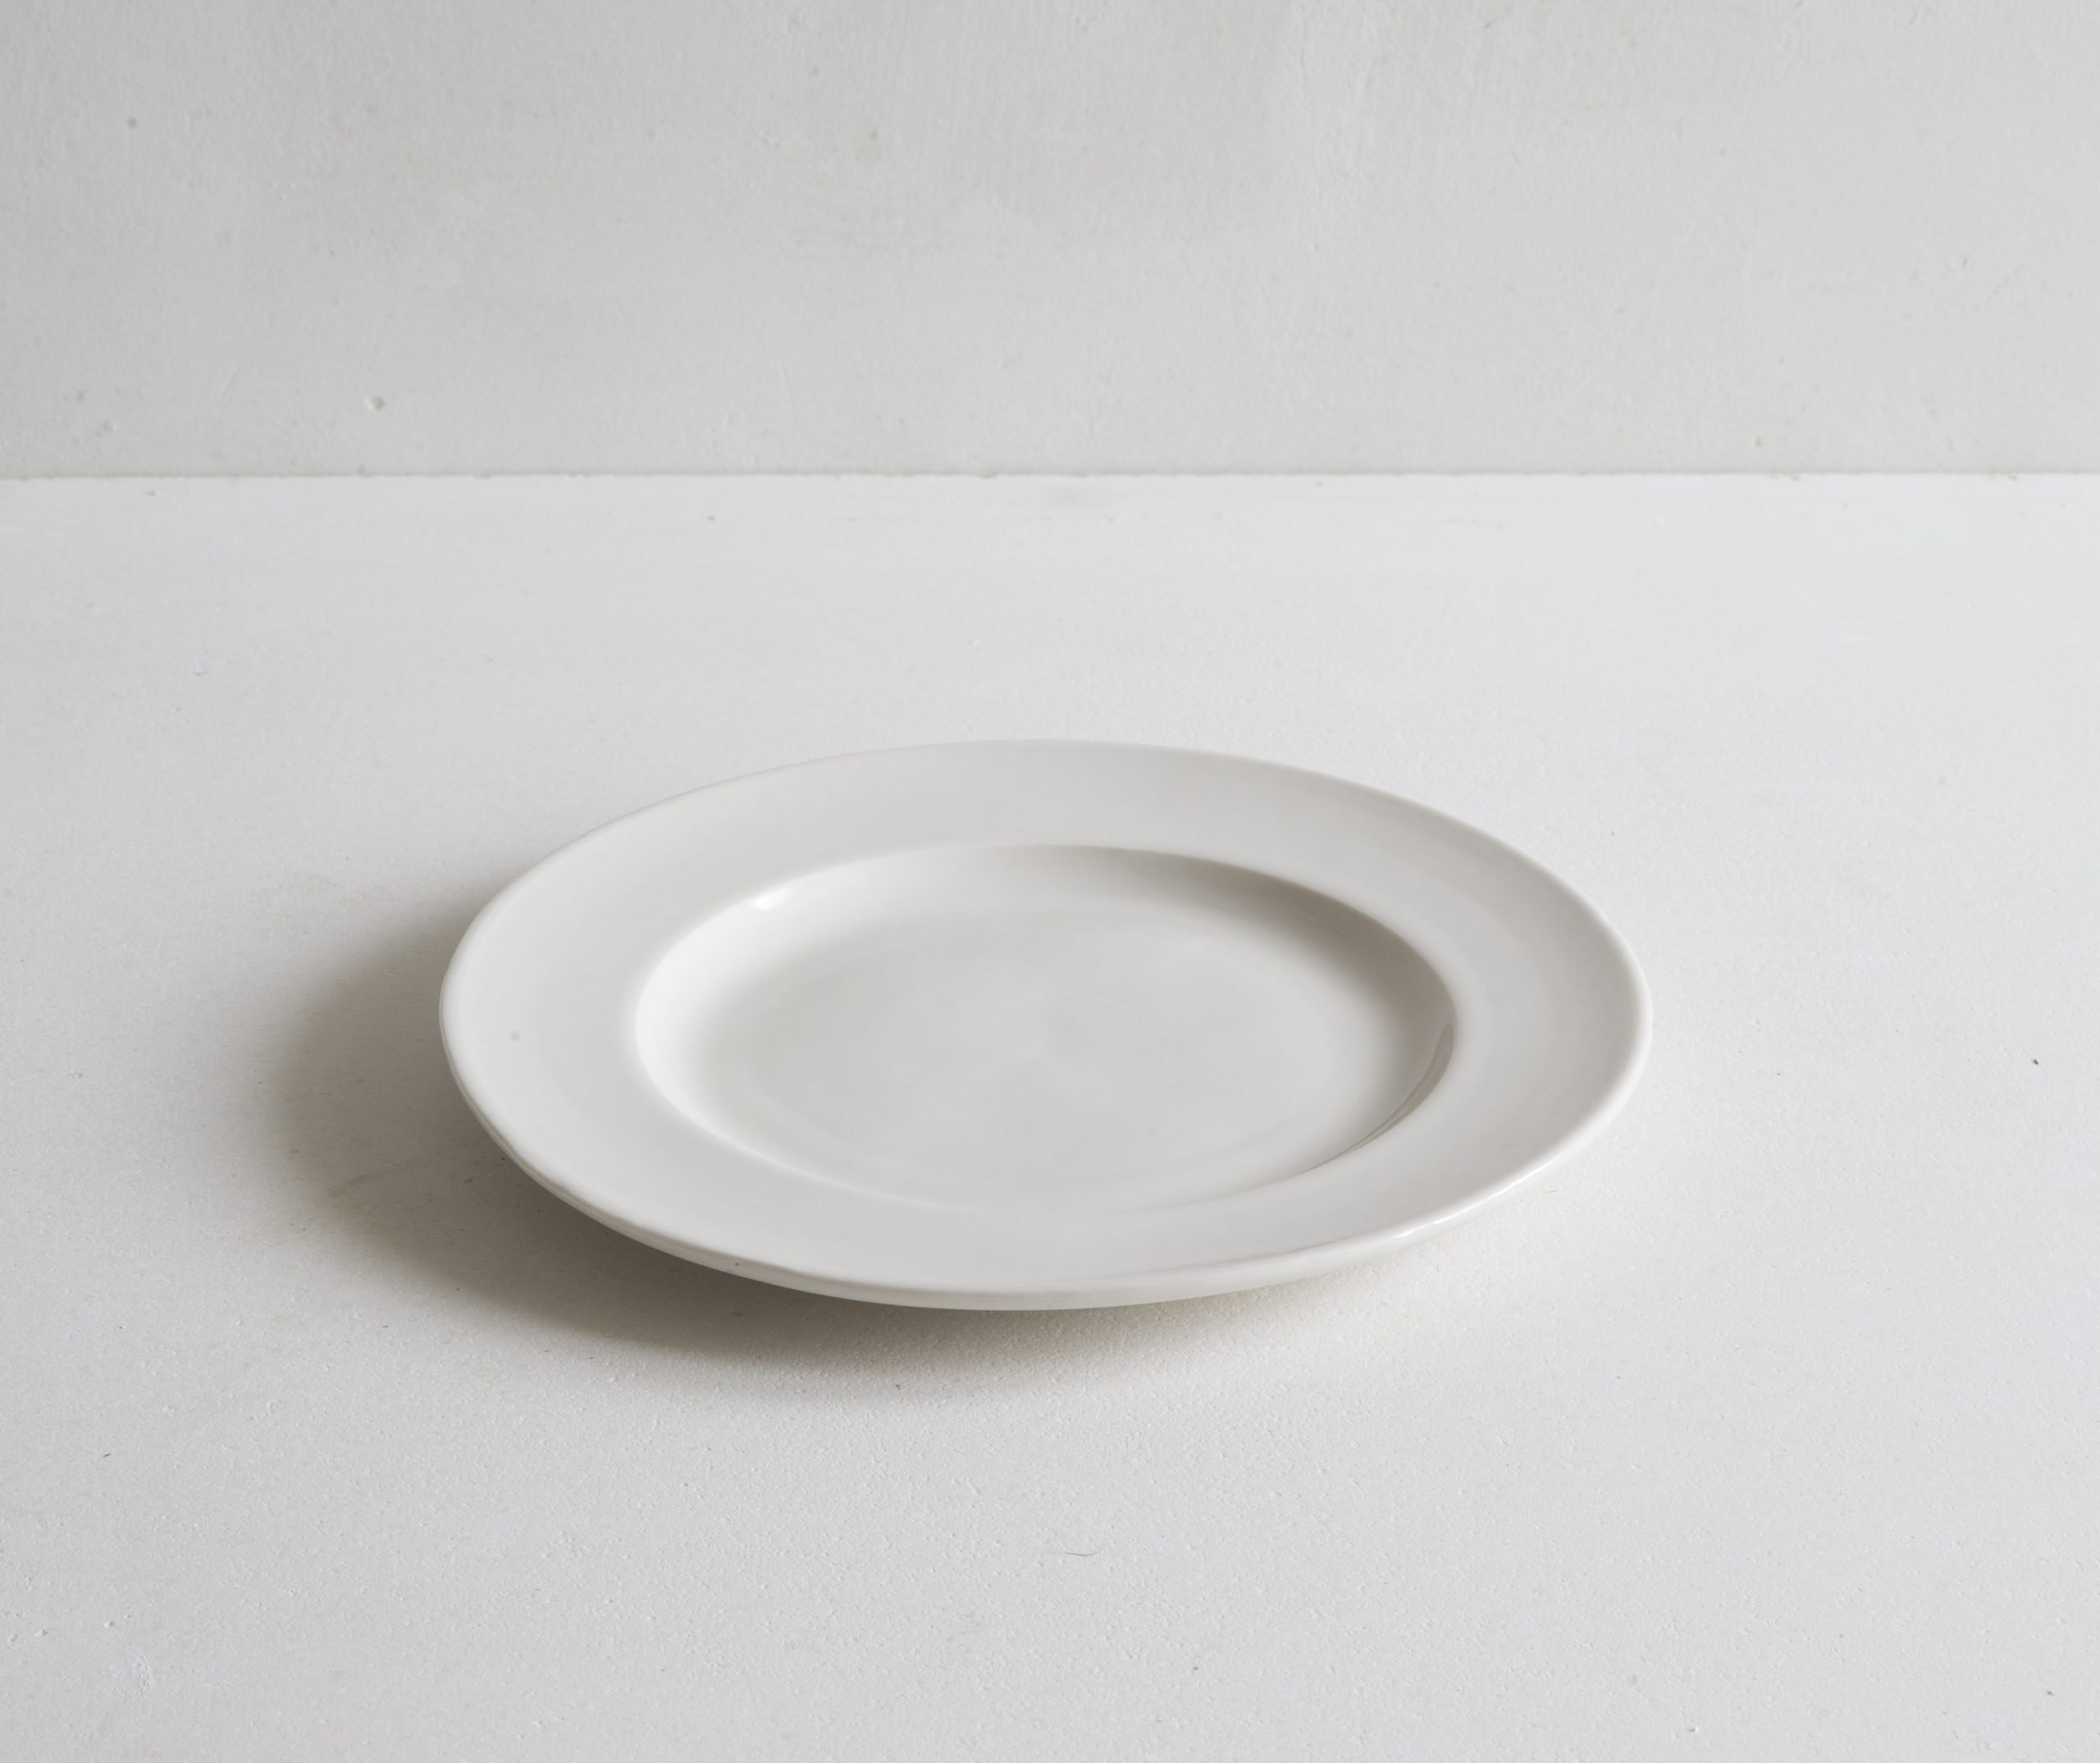 Classical Porcelain Side Plate Flat View